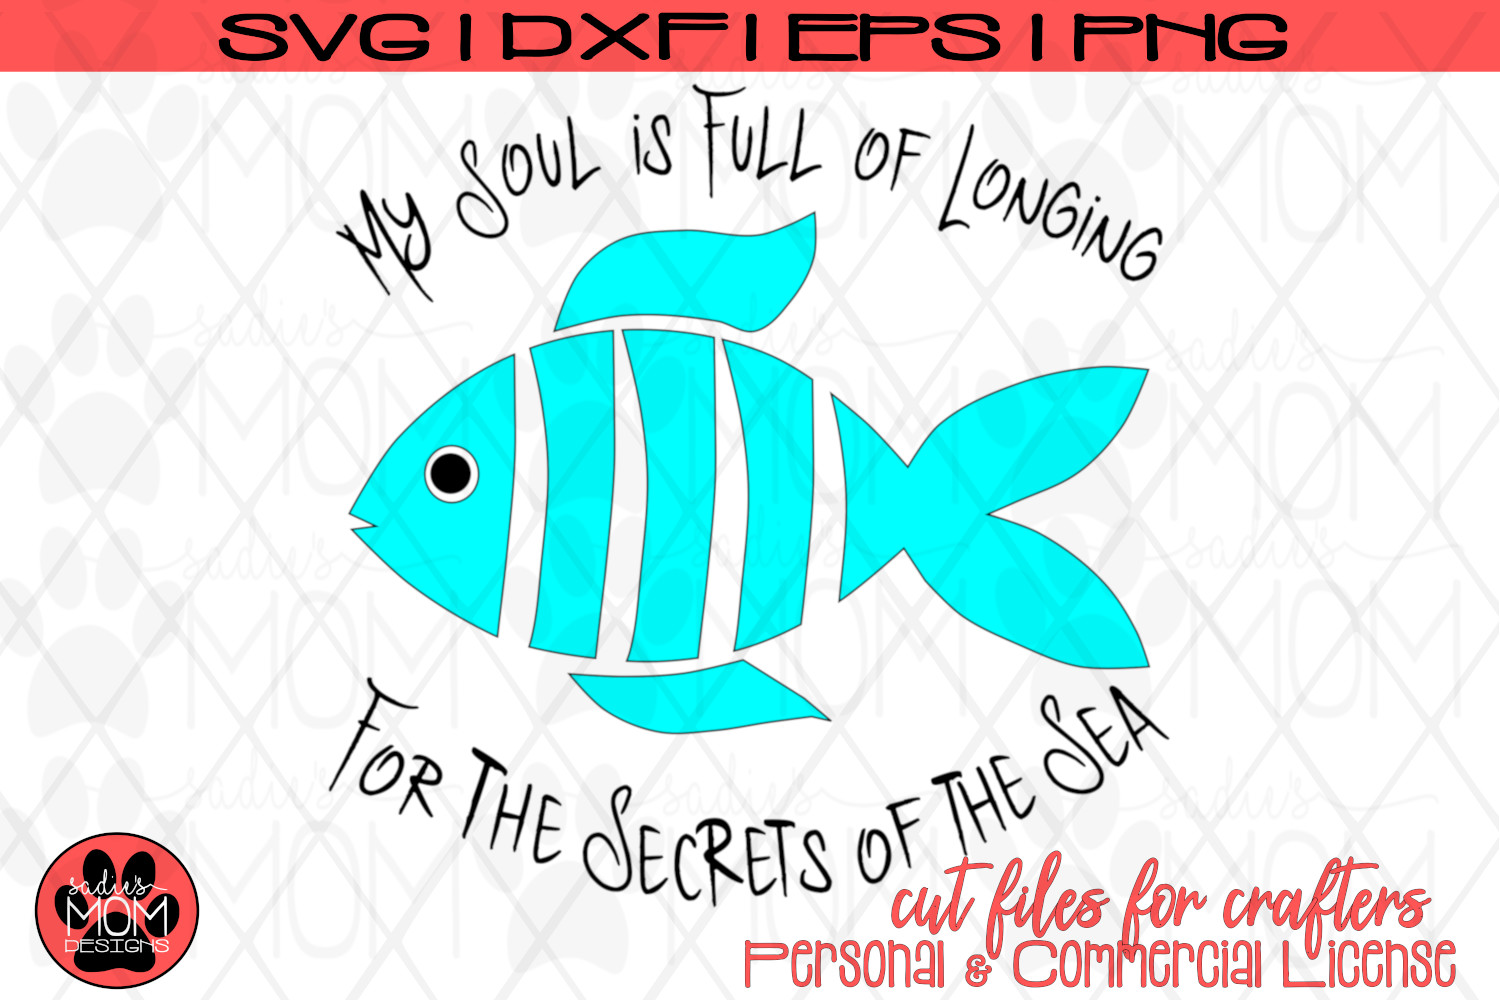 Whimsical Fish Design - Longfellow Secrets of the Sea | SVG example image 2